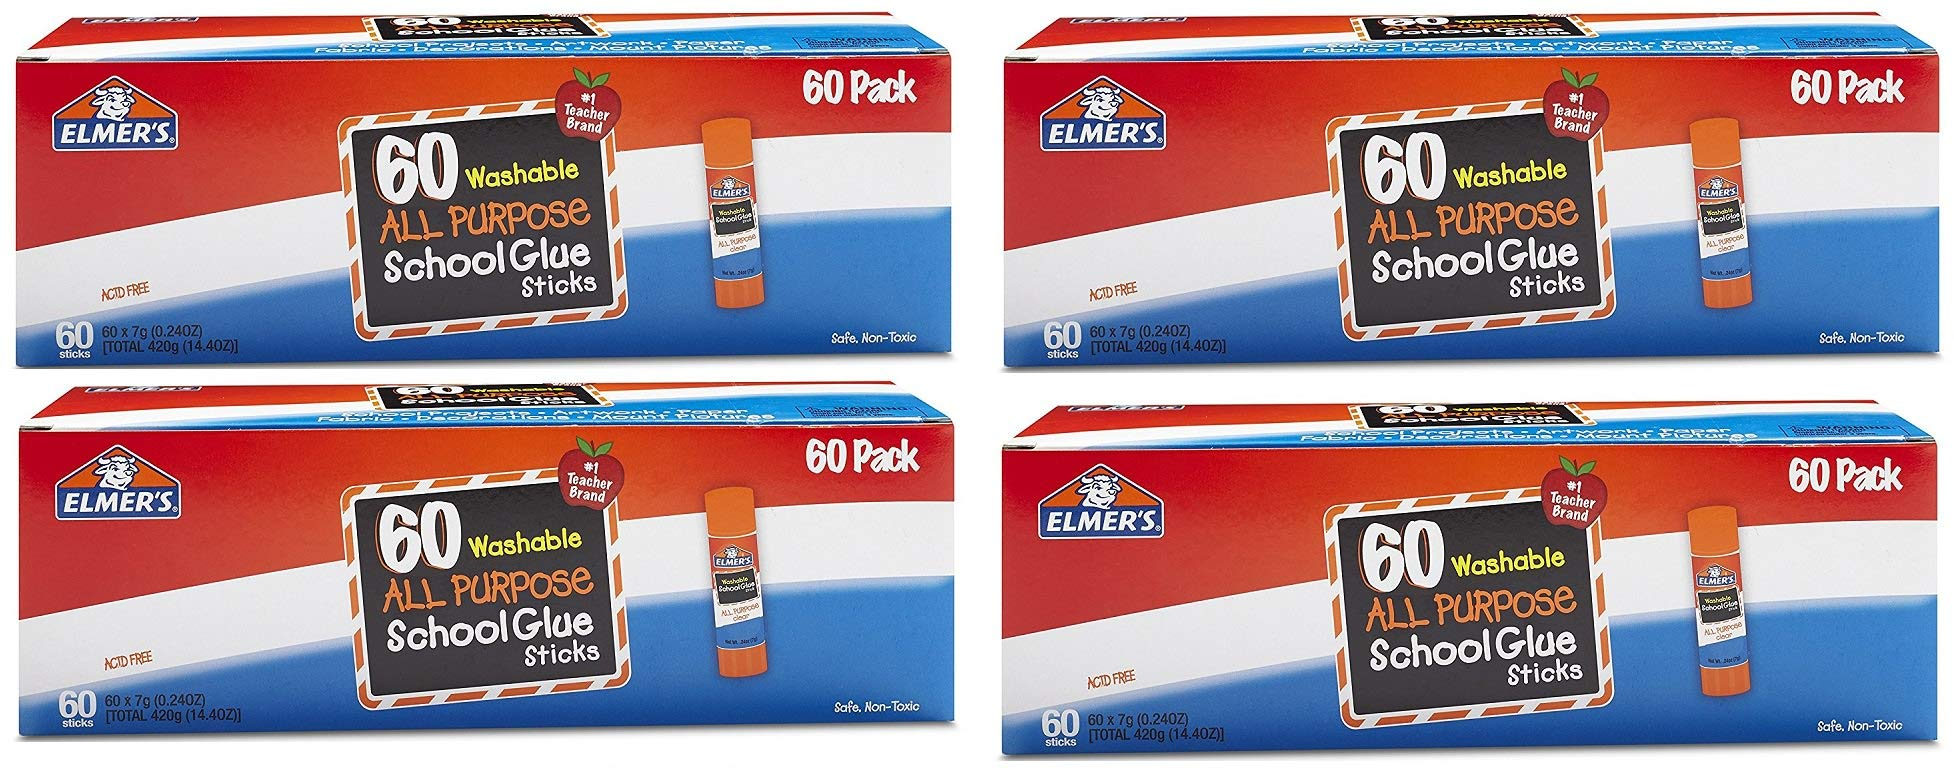 Elmers All Purpose School Glue Sticks, Washable, 0.24-ounce sticks, 240 Count